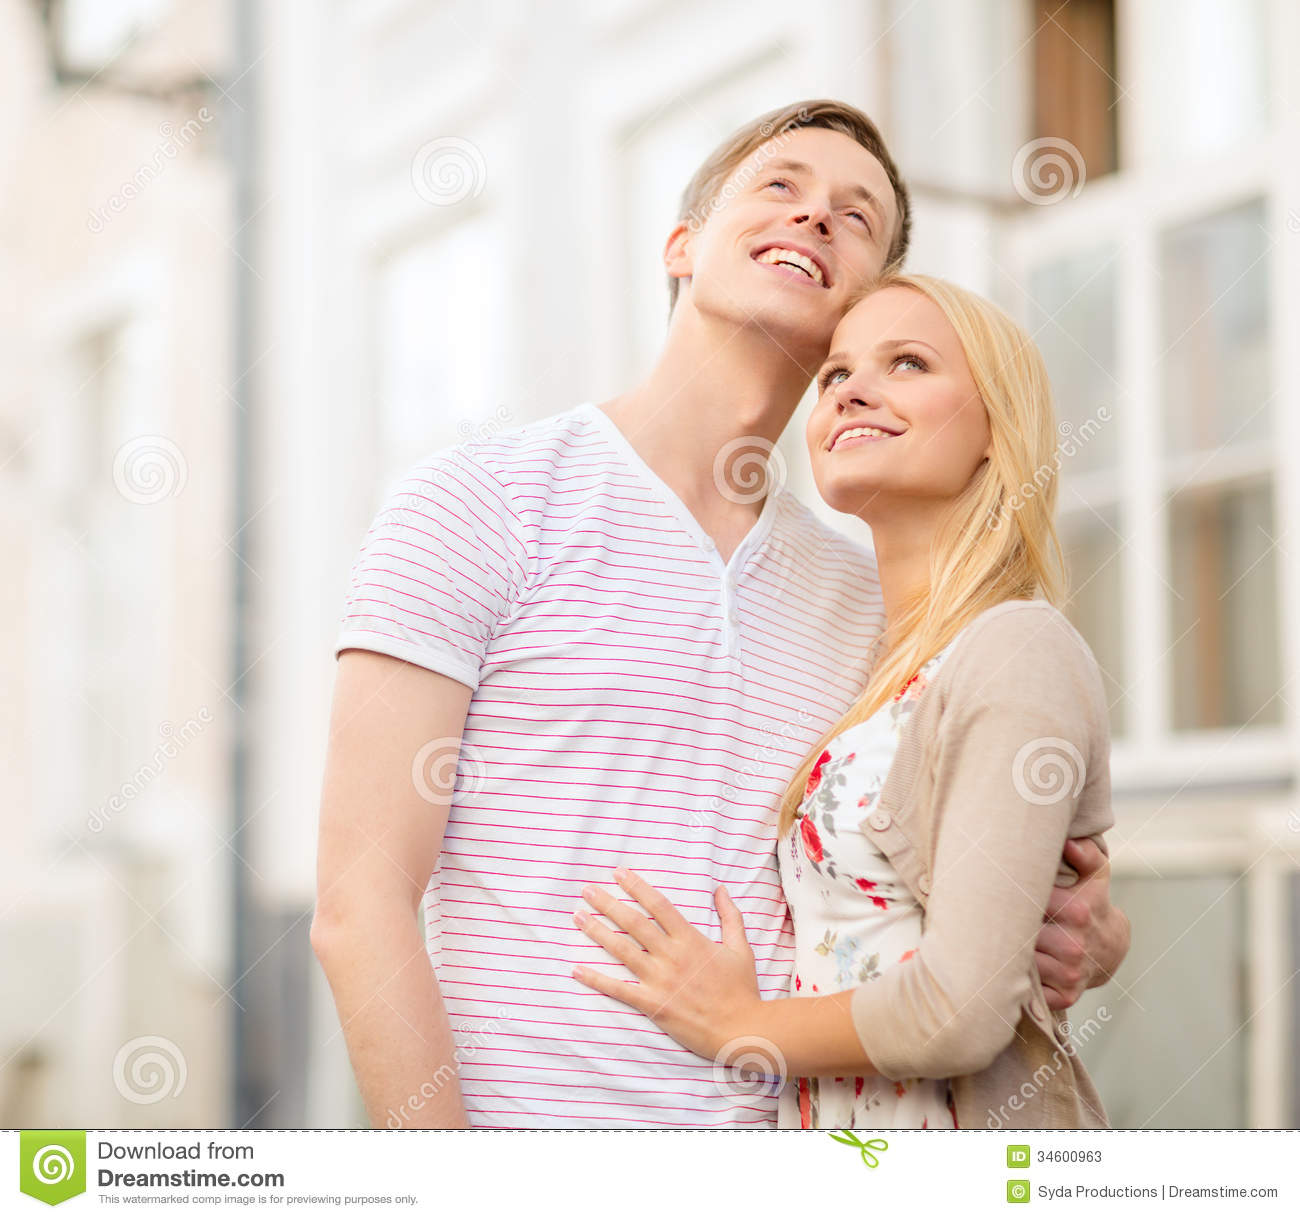 Couple Enjoying Their Summer Holidays Stock Photo: Romantic Couple In The City Looking Up Stock Image